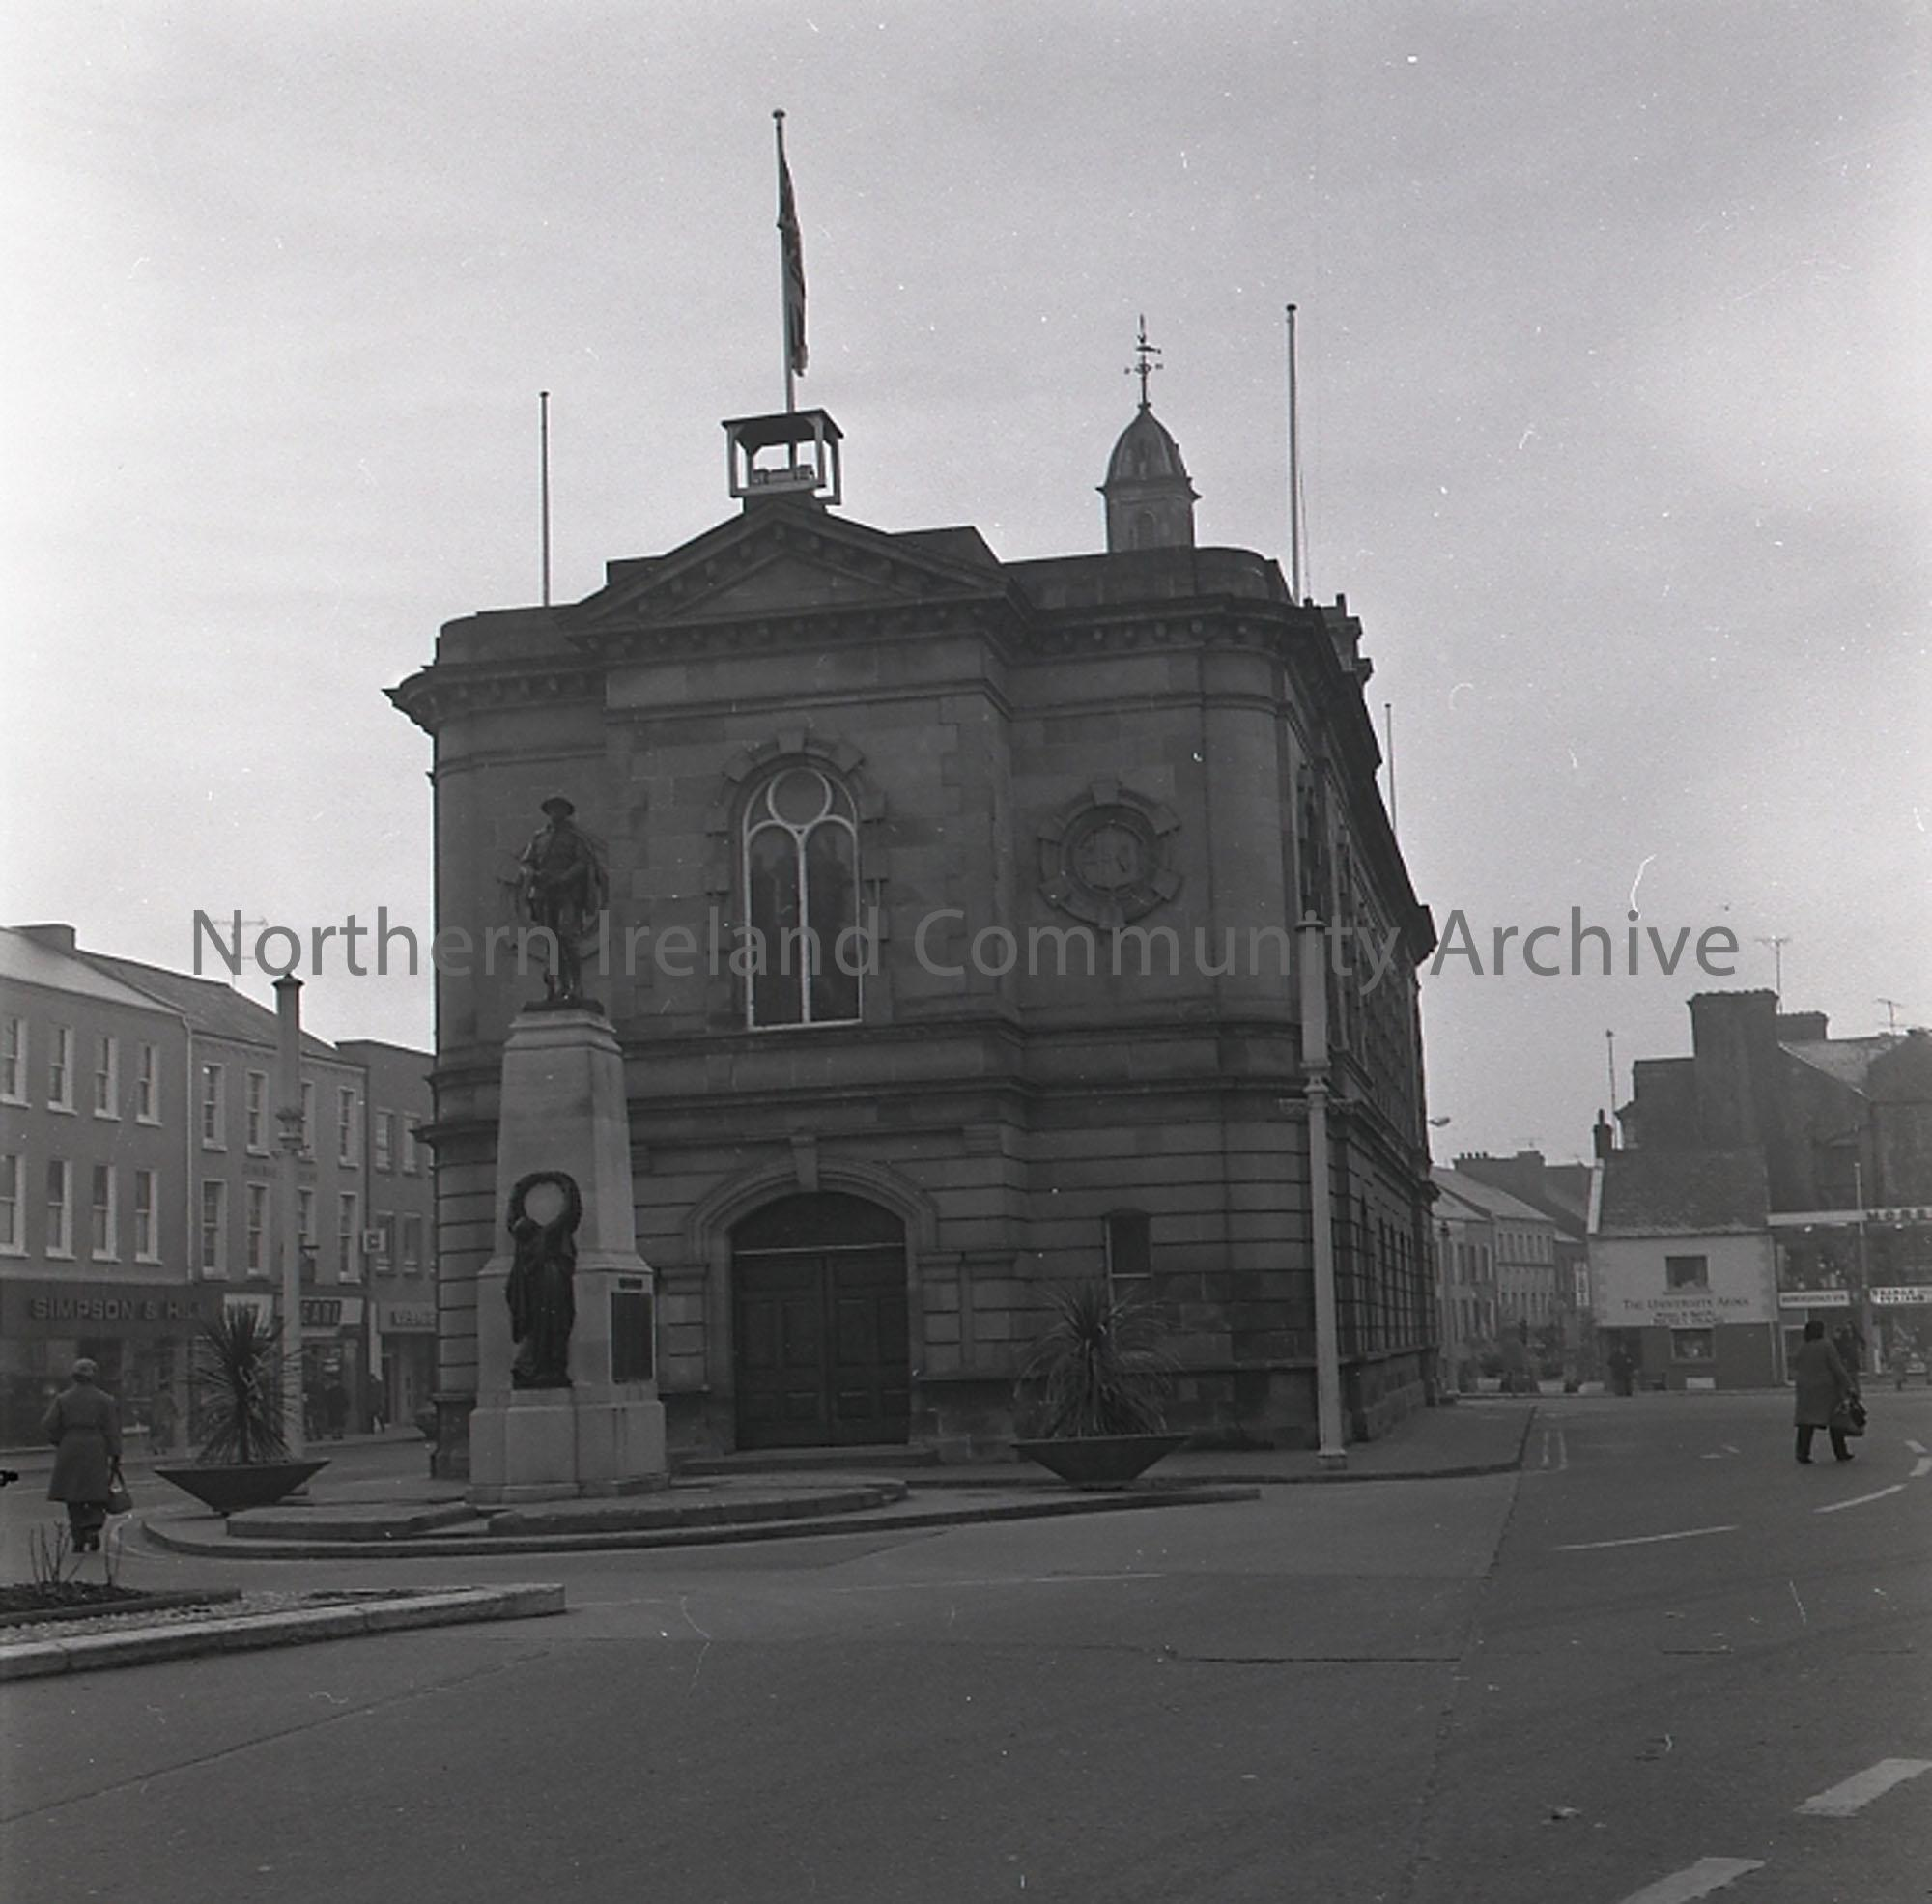 Coleraine Town Hall (1603)